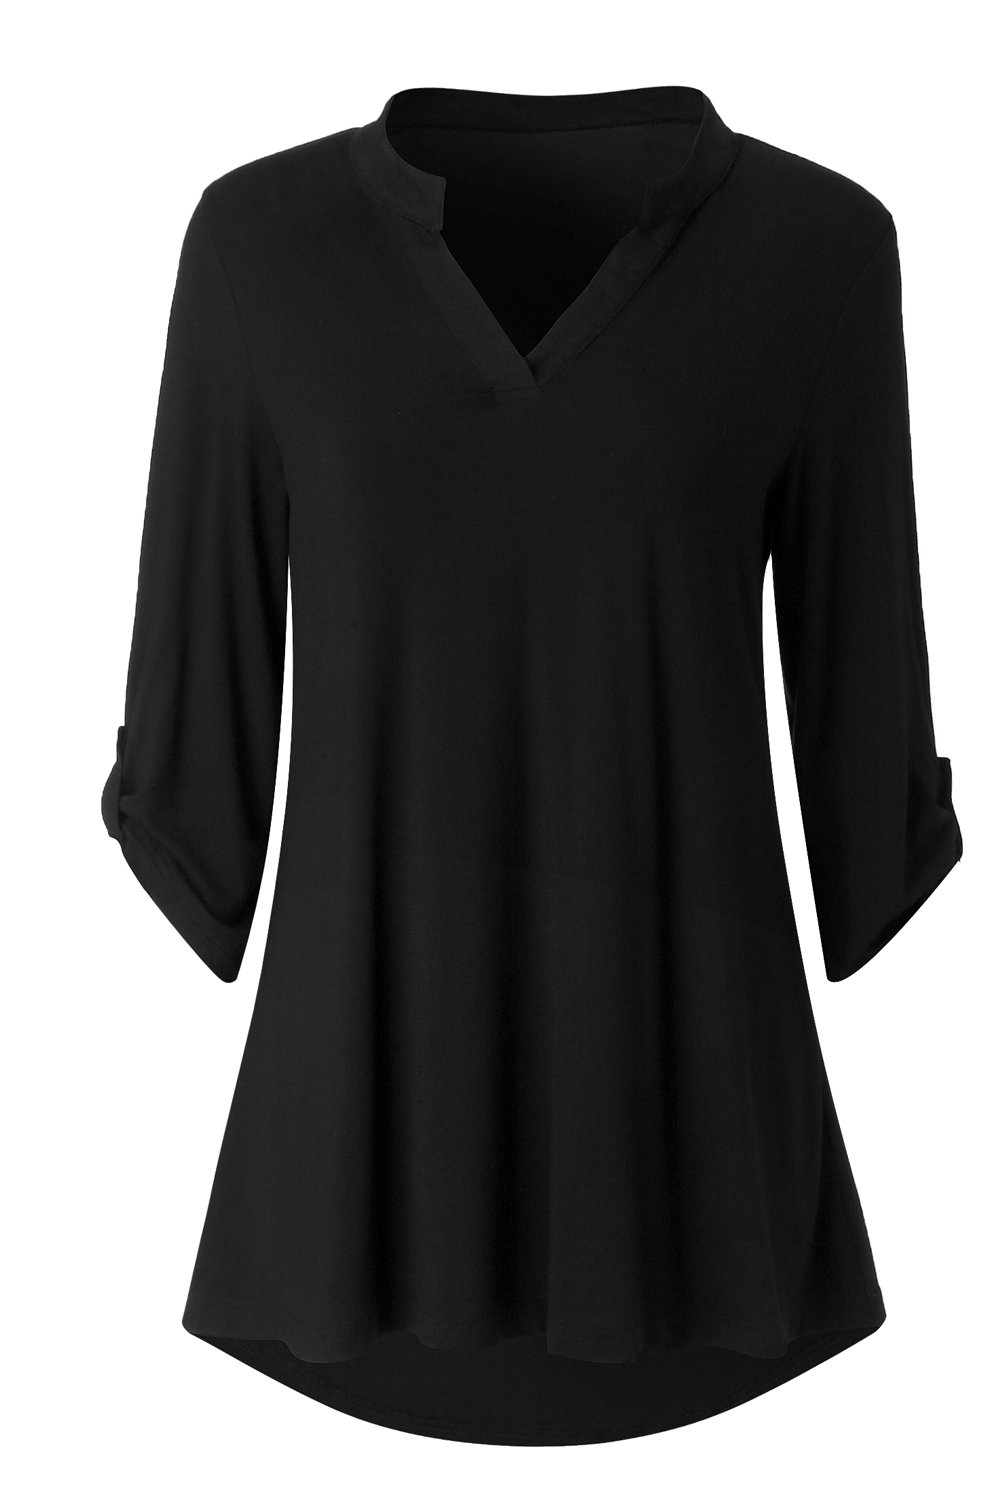 Zattcas Womens Floral Printed Tunic Shirts 3/4 Roll Sleeve Notch Neck Tunic Top,Solid Black,X-Large by Zattcas